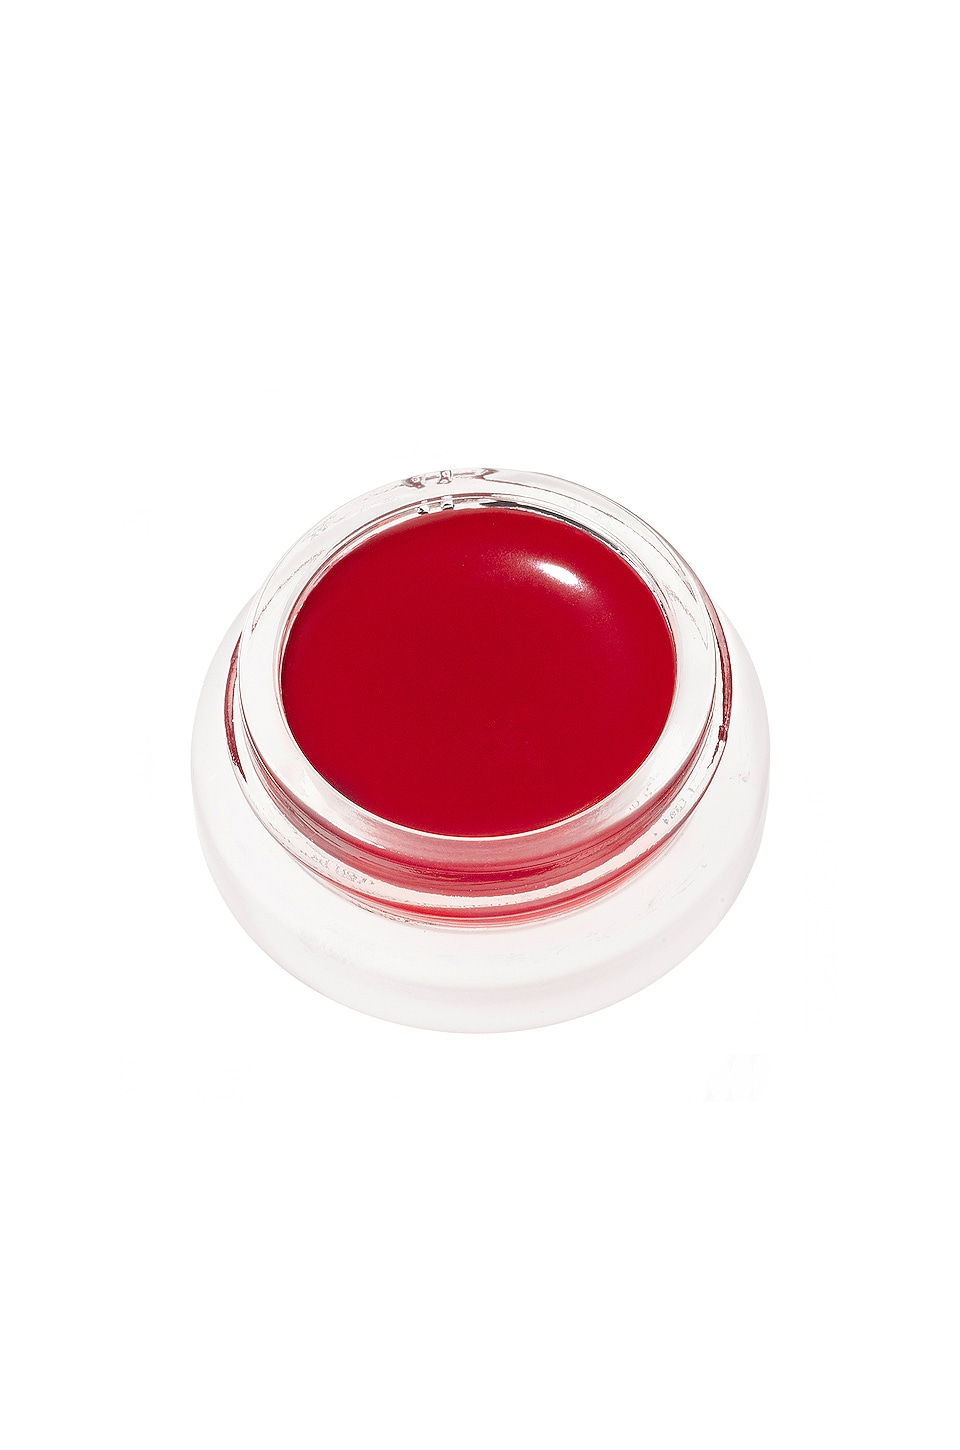 RMS Beauty Lip Shine in Sacred